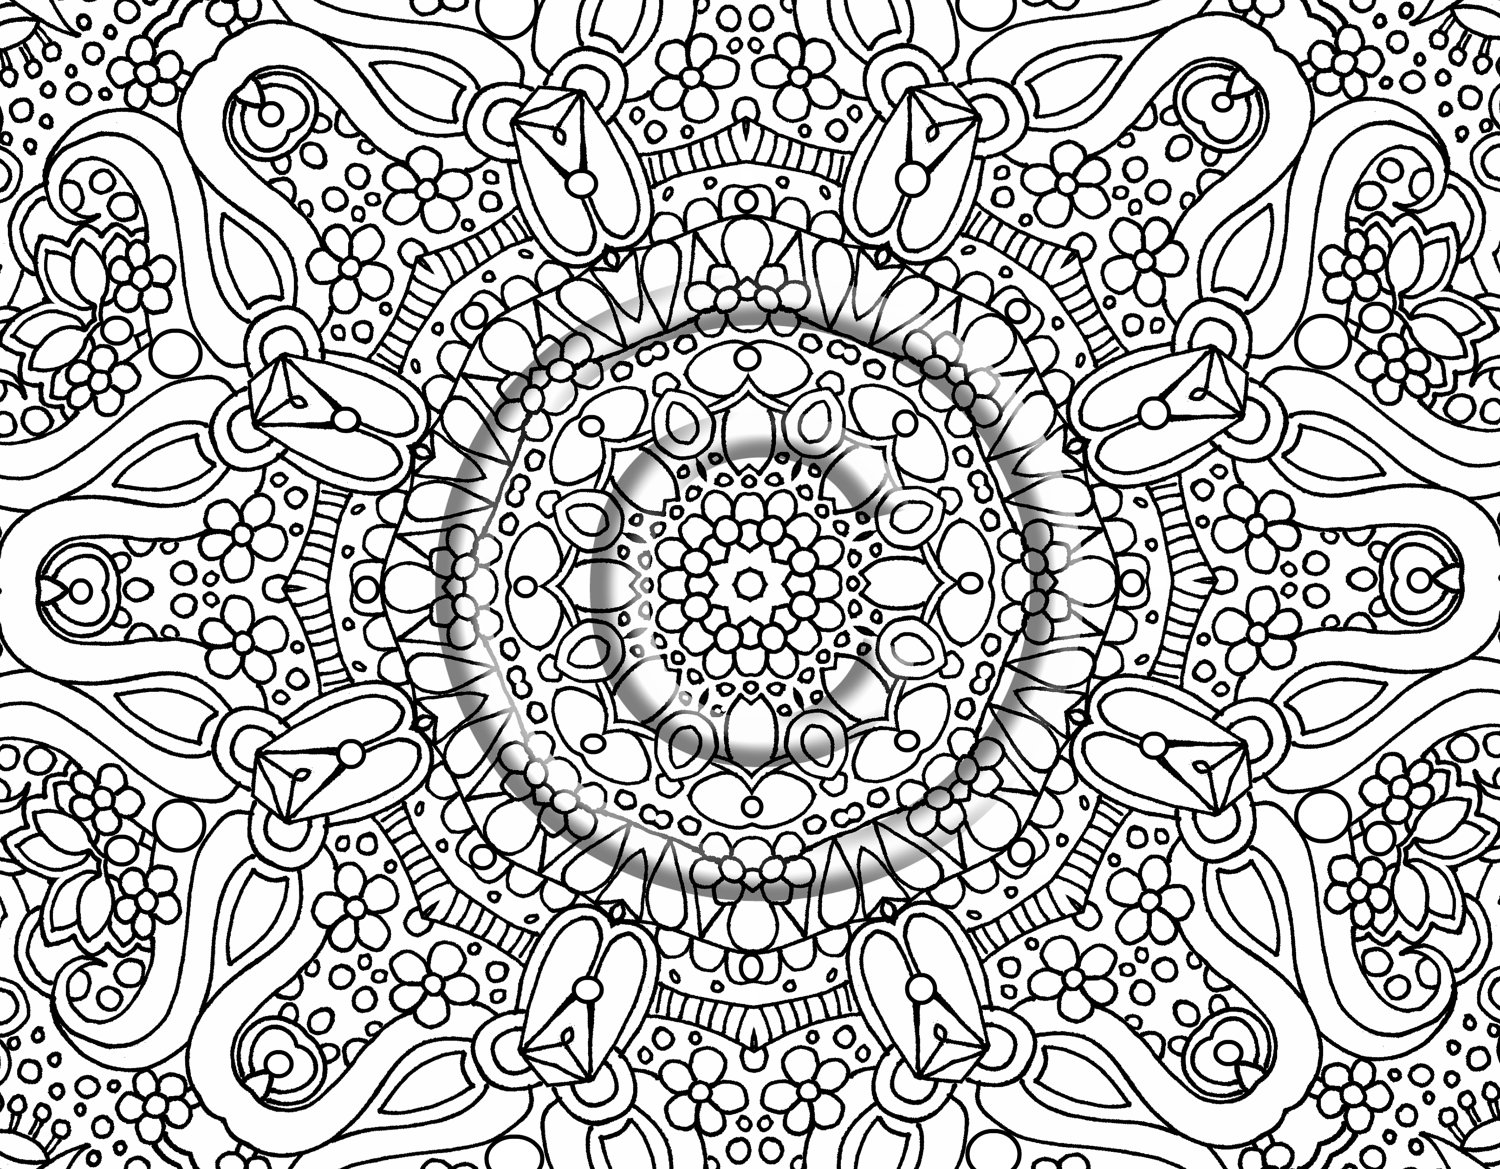 detailed flower coloring pages detailed flower coloring pages to download and print for free detailed coloring flower pages